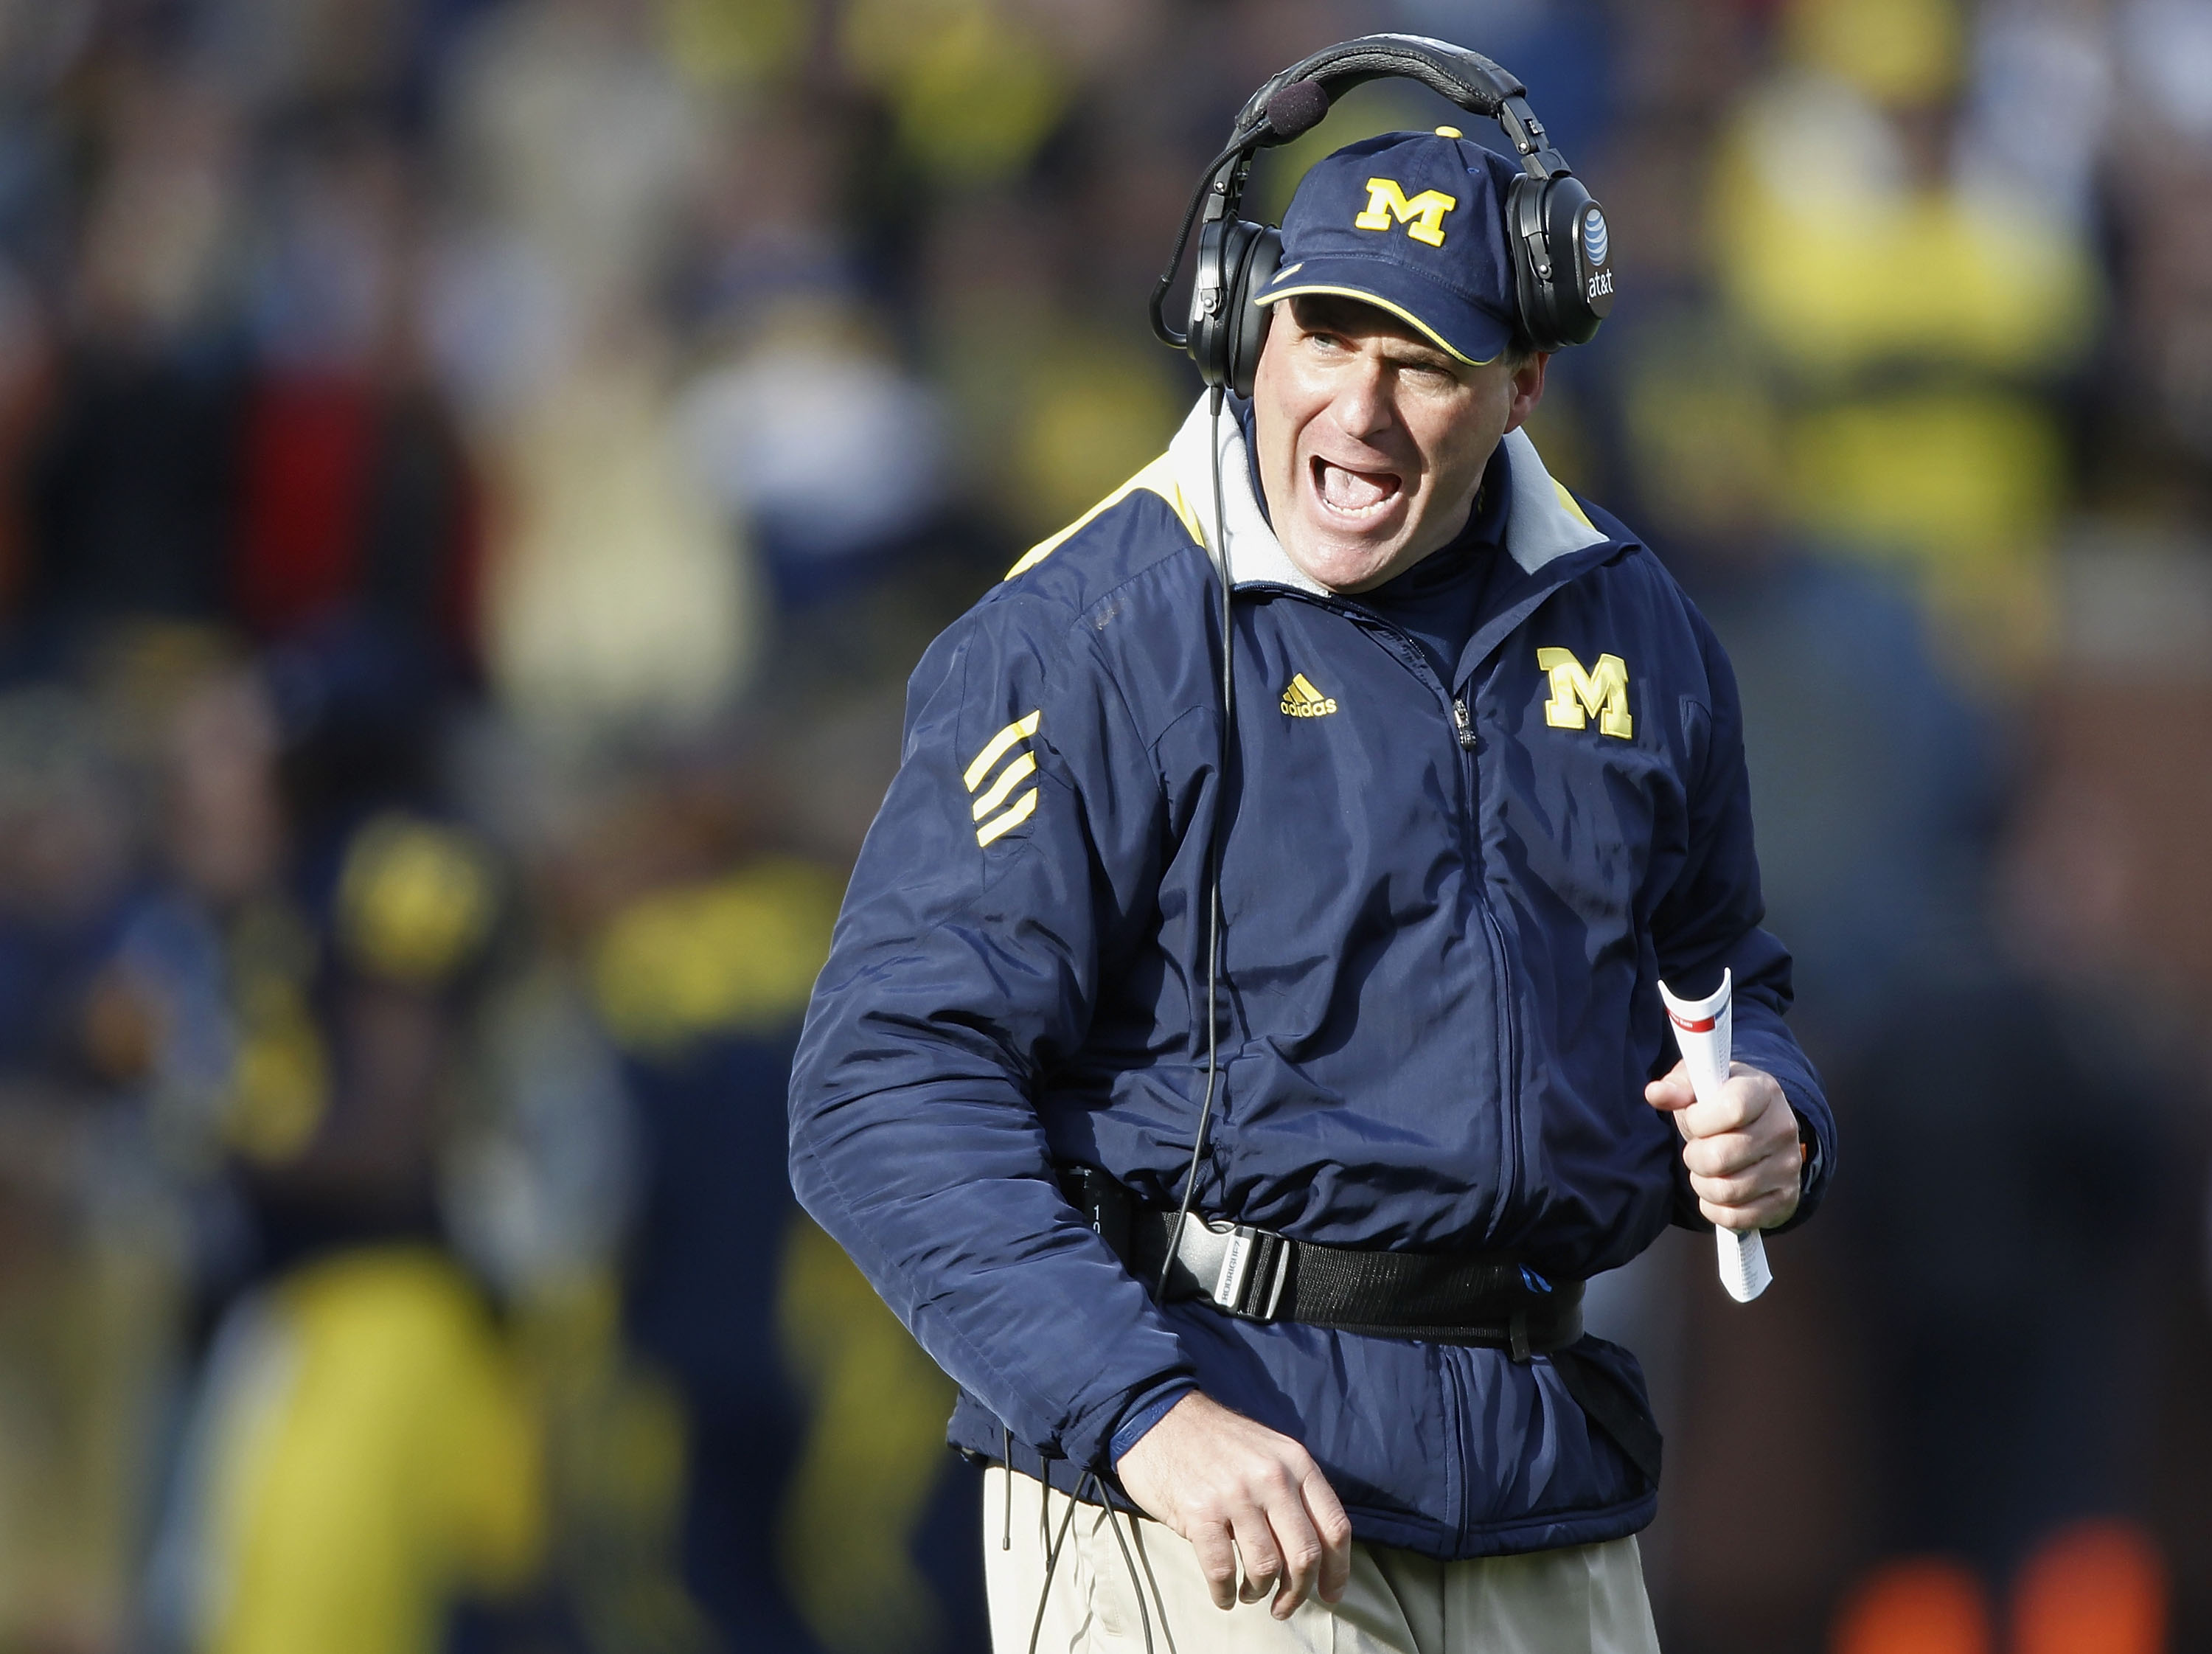 ANN ARBOR, MI - NOVEMBER 20:  Head coach Rich Rodriguez of the Michigan Wolverines reacts while playing the Wisconson Badgers at Michigan Stadium on November 20, 2010 in Ann Arbor, Michigan. Wisconsin won the game 48-28. (Photo by Gregory Shamus/Getty Ima